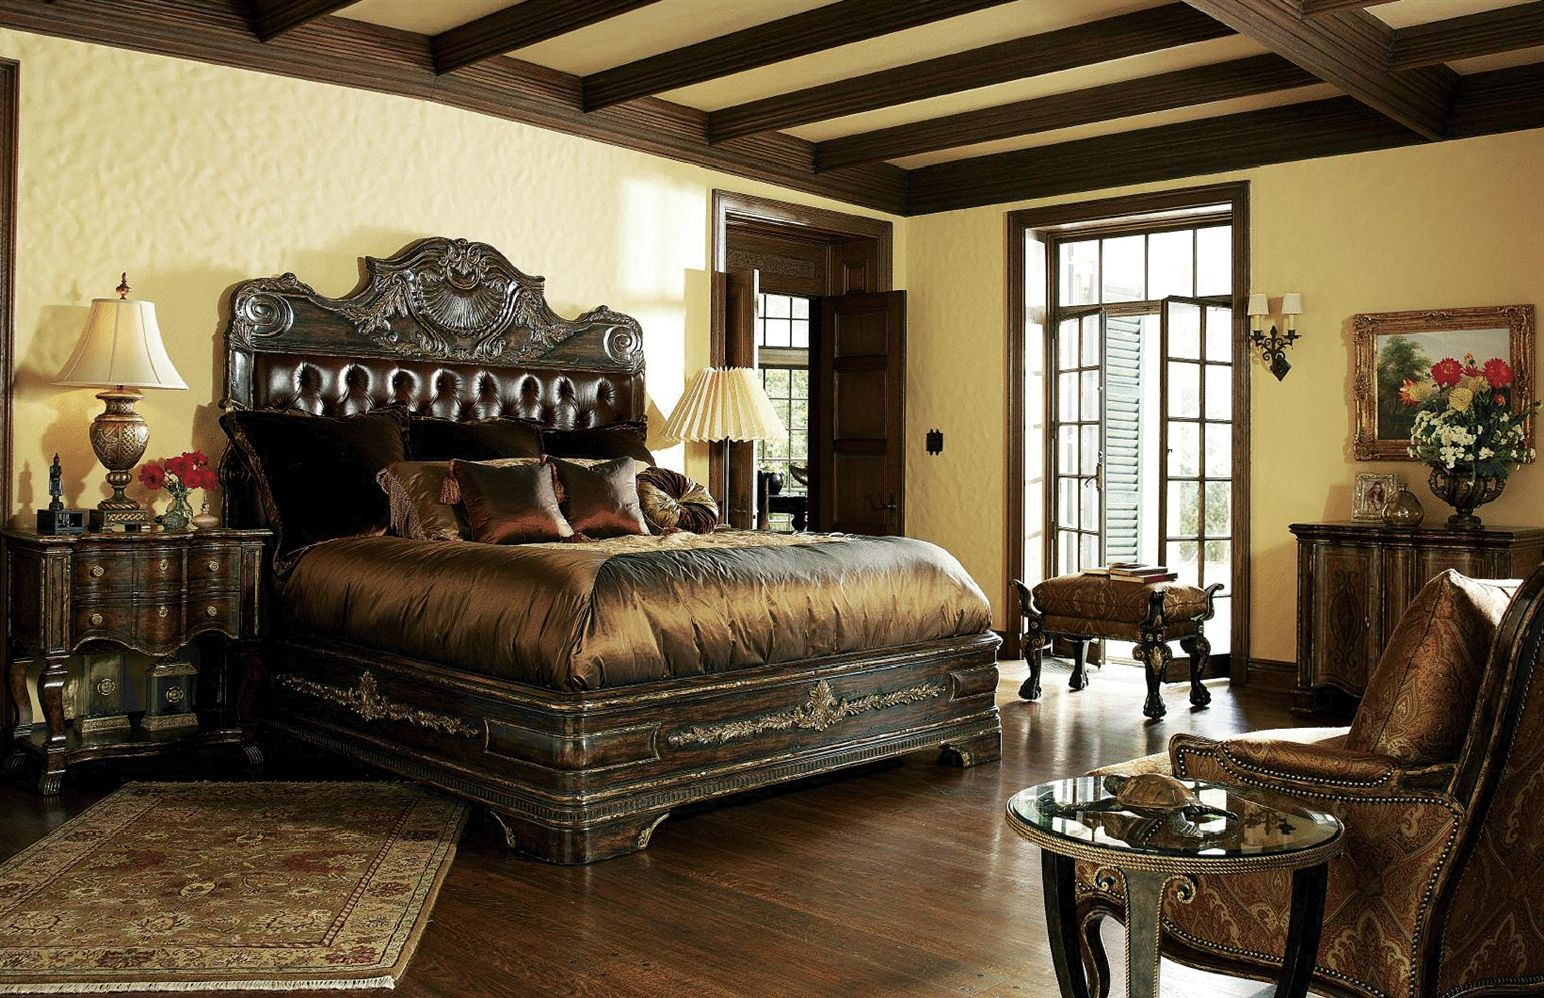 Best Bedroom Antique Master Bedroom With Carving Headboard Idea 400 x 300